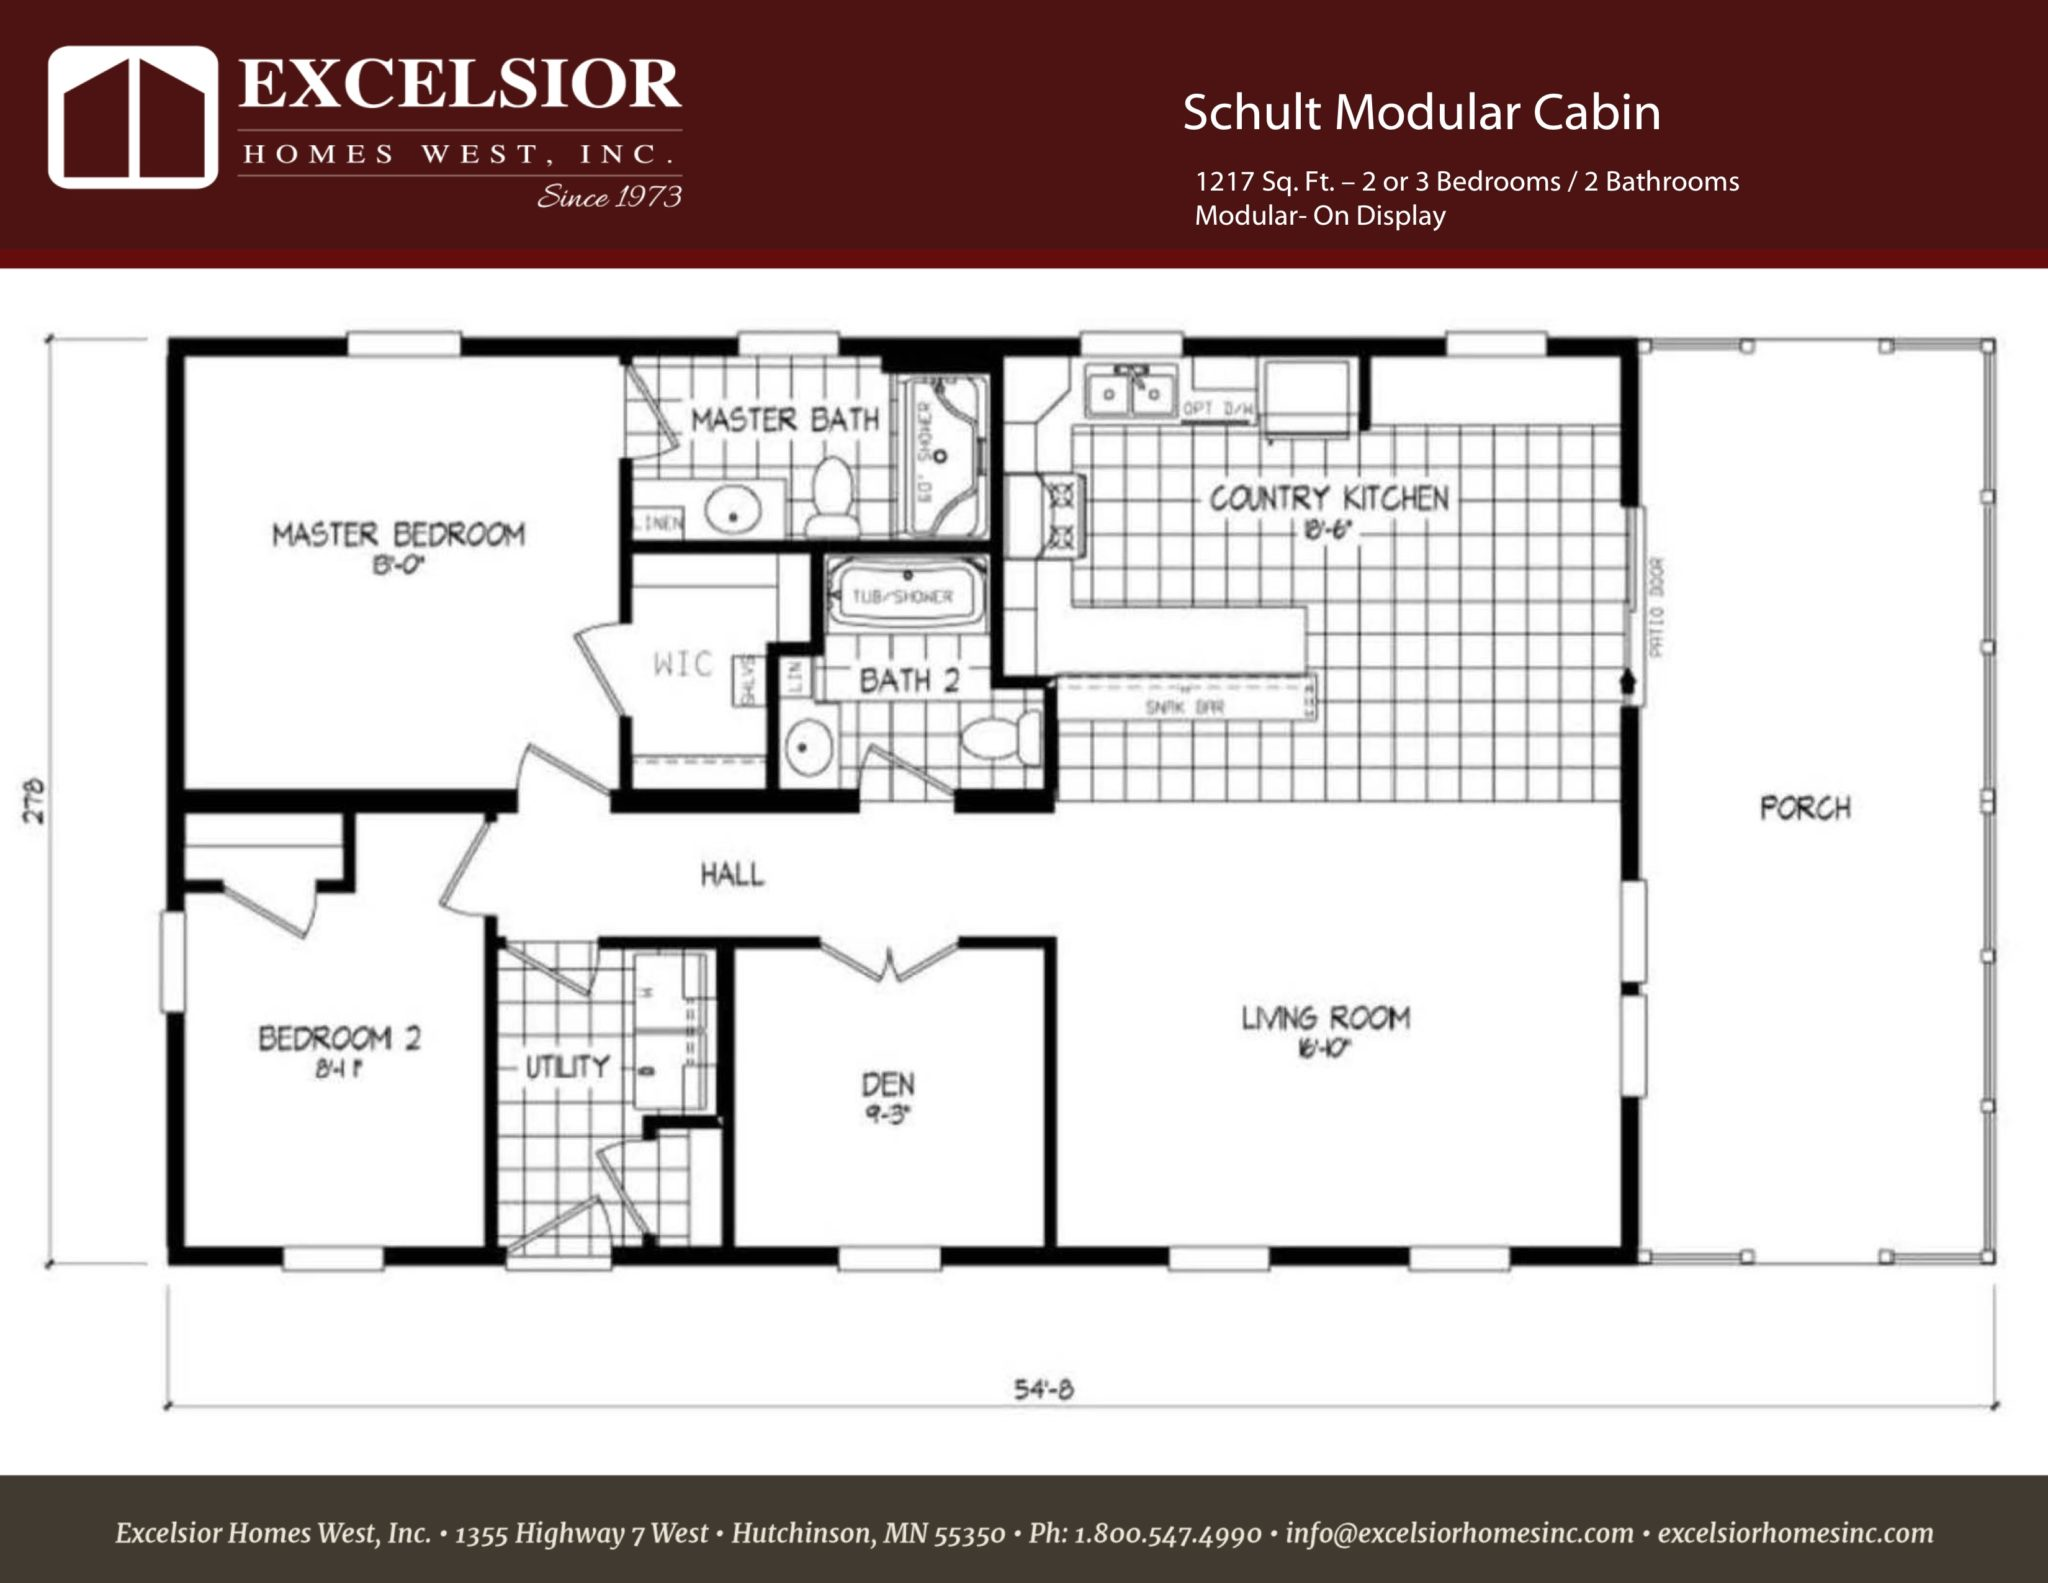 Schult Modular Cabin Excelsior Homes West Inc